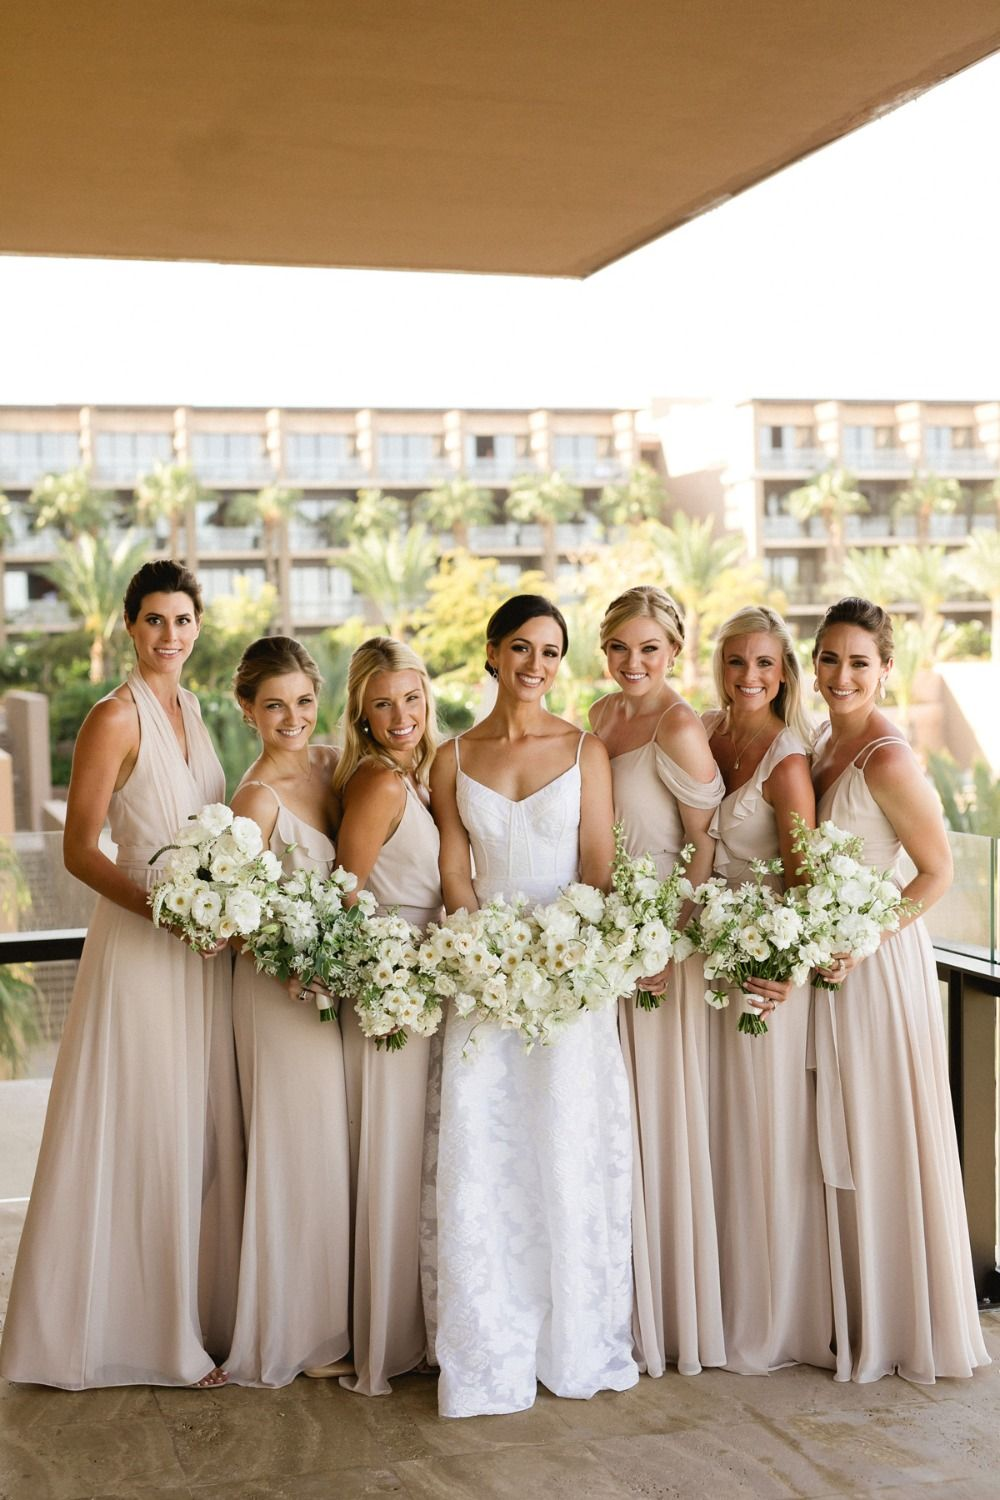 Classic And Elegant Blacktie Wedding Under A Canopy Of Flowers Bridesmaids Weddingplanning Weddinginspo Beigebridesmaidress Weddingdress: Black Tie Wedding Dress At Websimilar.org